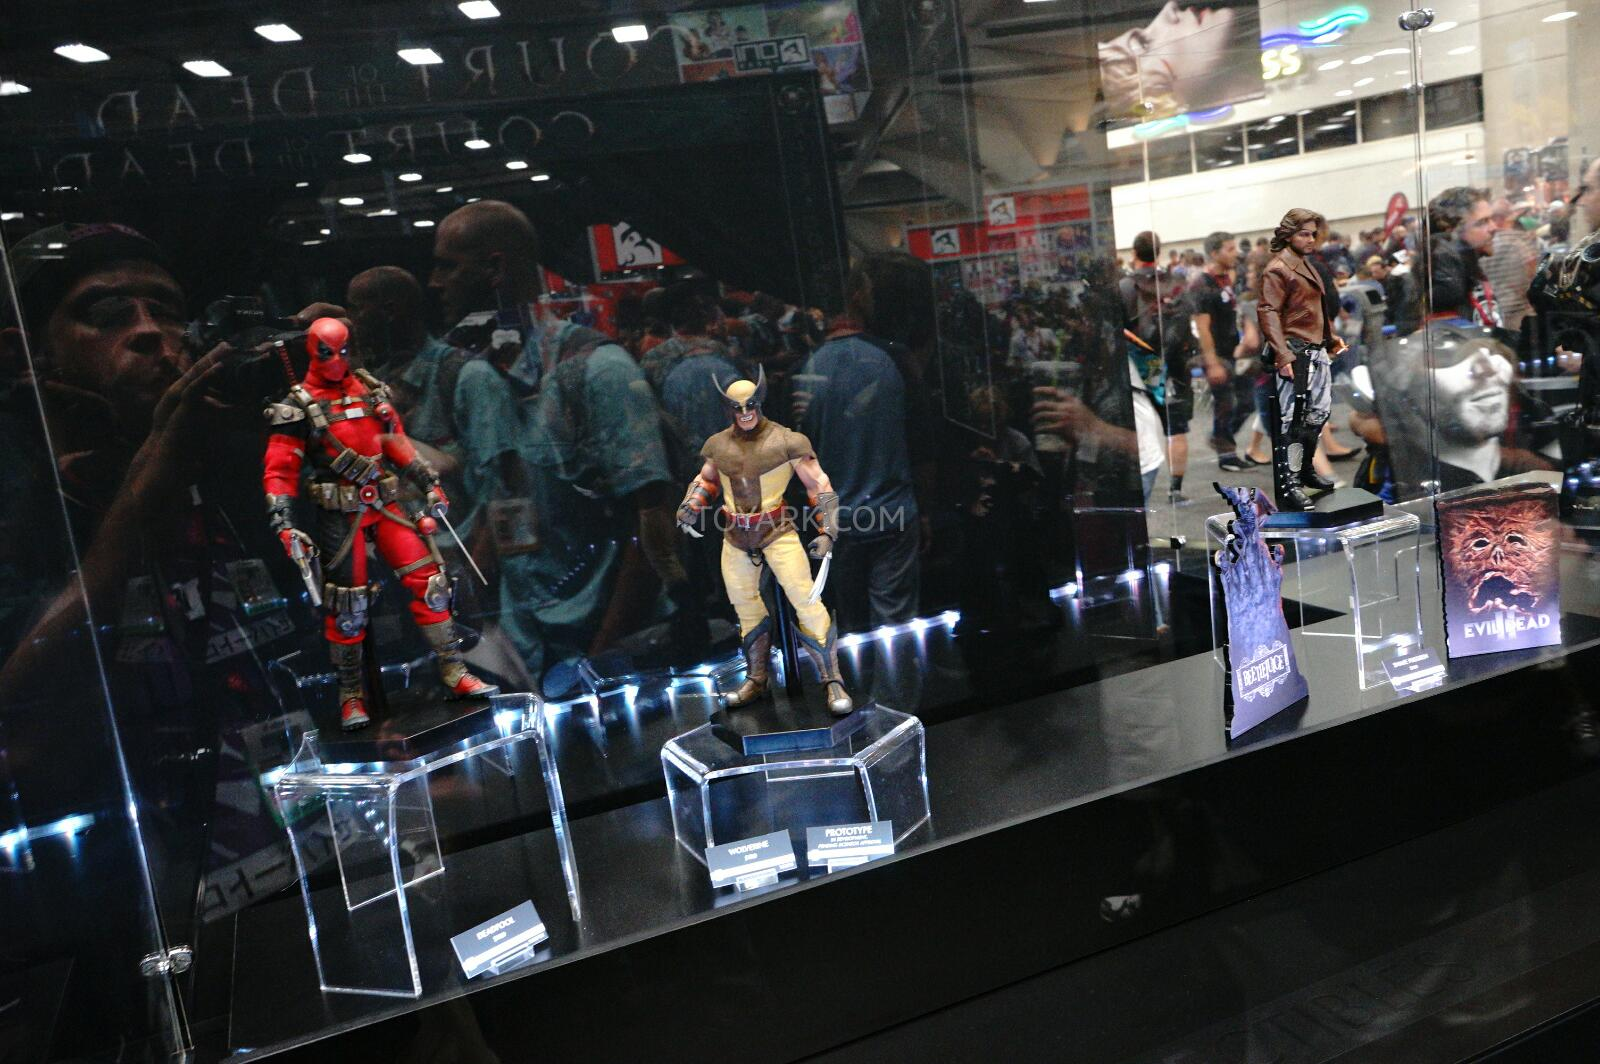 [Sideshow] Marvel Sixth Scale Collection - Wolverine SDCC-2014-Sideshow-Marvel-Sixth-Scale-Figures-001